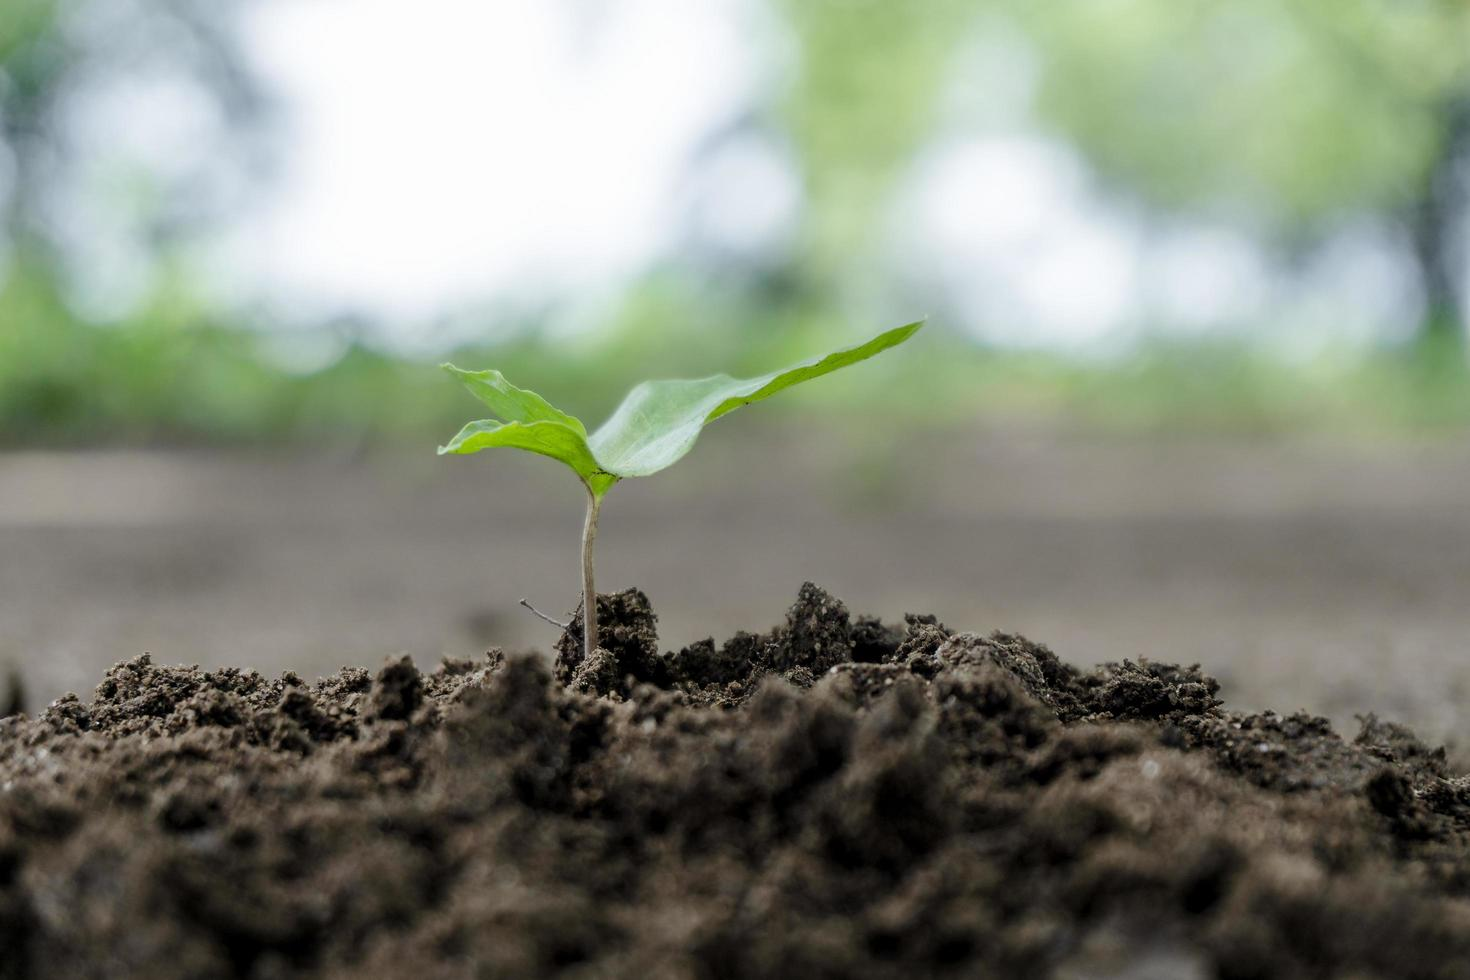 Plant sprouts from soil in garden photo